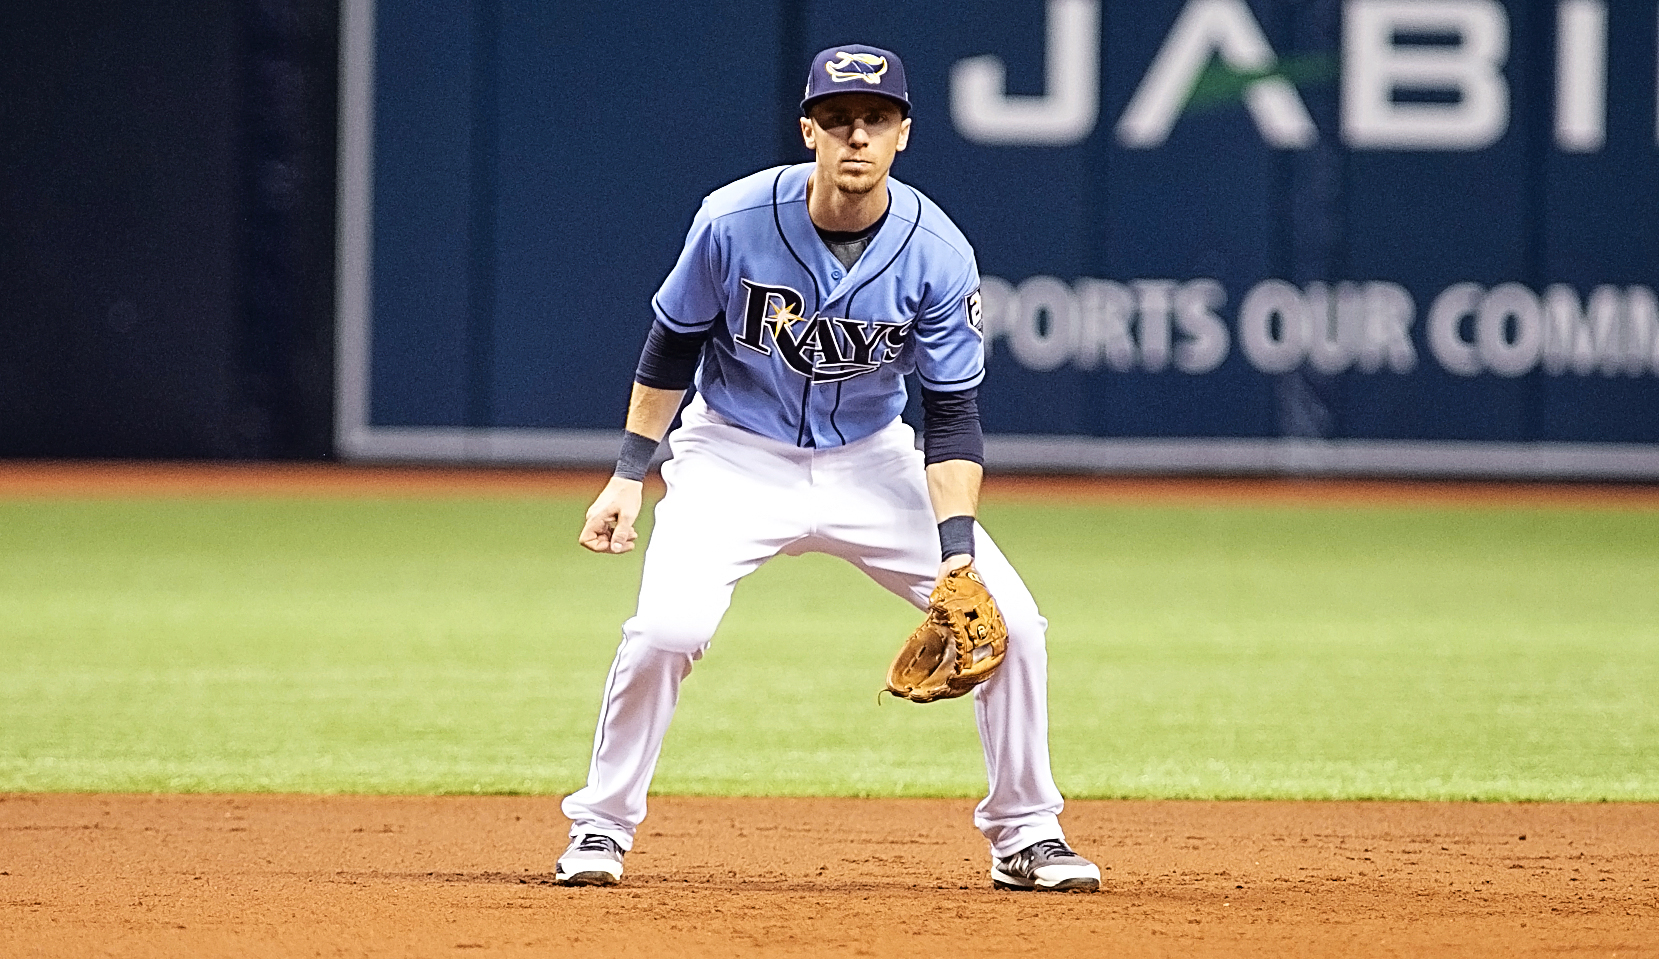 Duffy had two hits for the Rays./CARMEN MANDATO